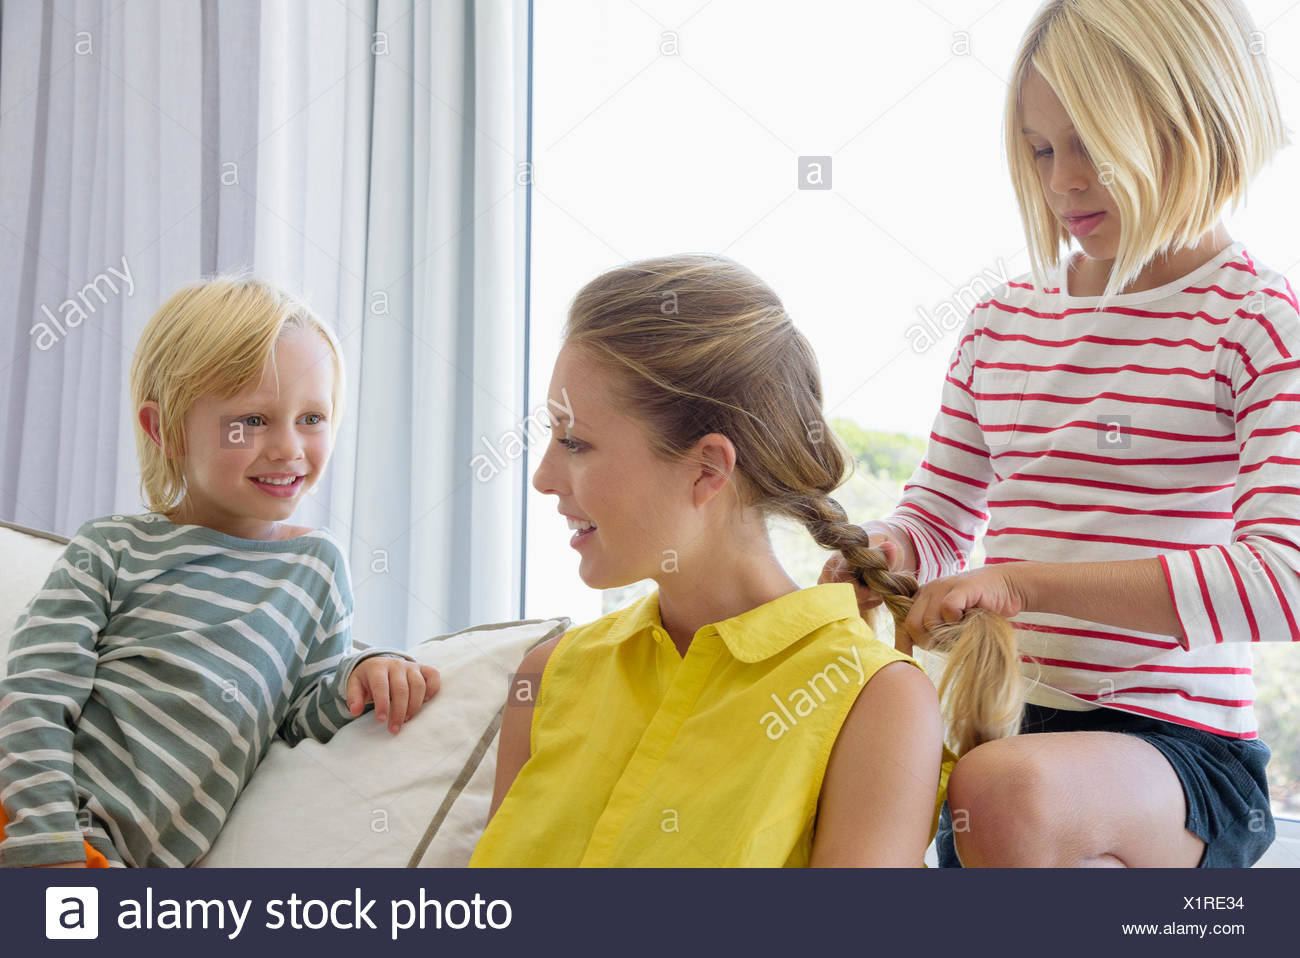 Happy mother and children sitting on couch in living room - Stock Image